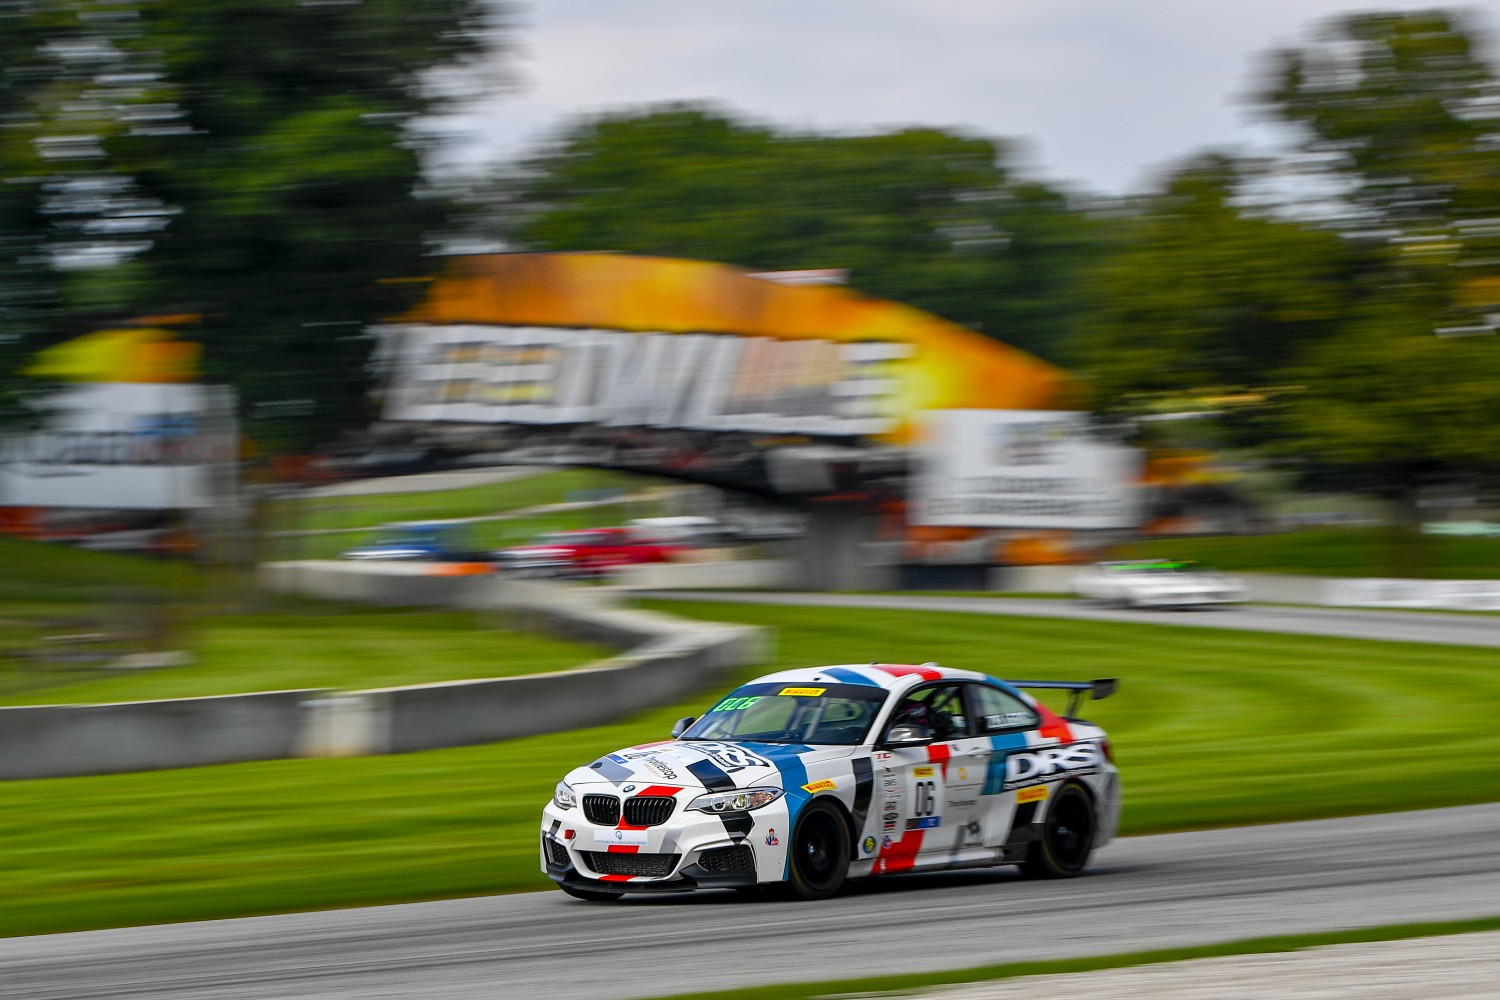 #06 BMW M240iR Cup of Hanna Zellers  with DRS (Dynamic Racing Solutions)  Road America World Challenge America , Elkhart Lake WI